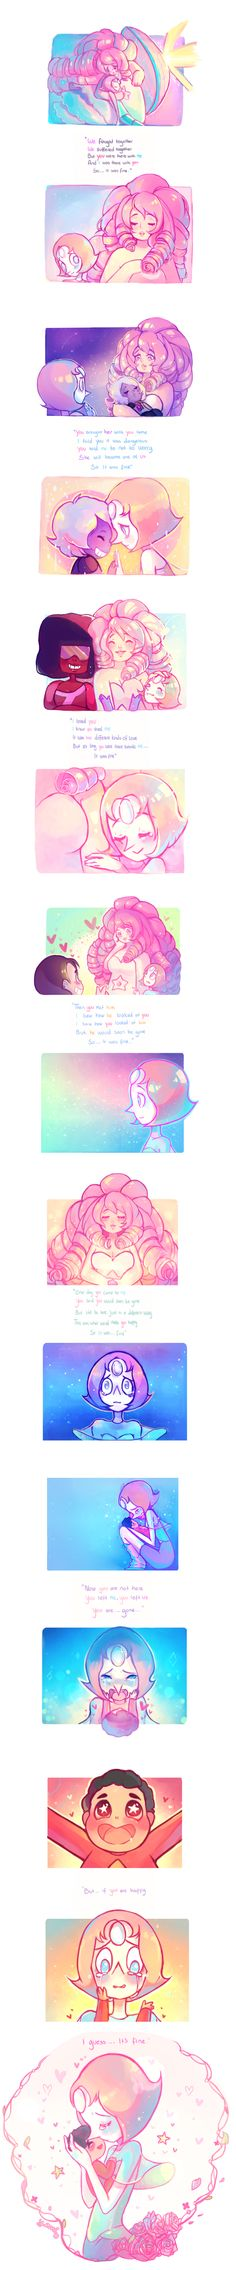 Story for Pearl by Yamio.deviantart.com on @DeviantArt